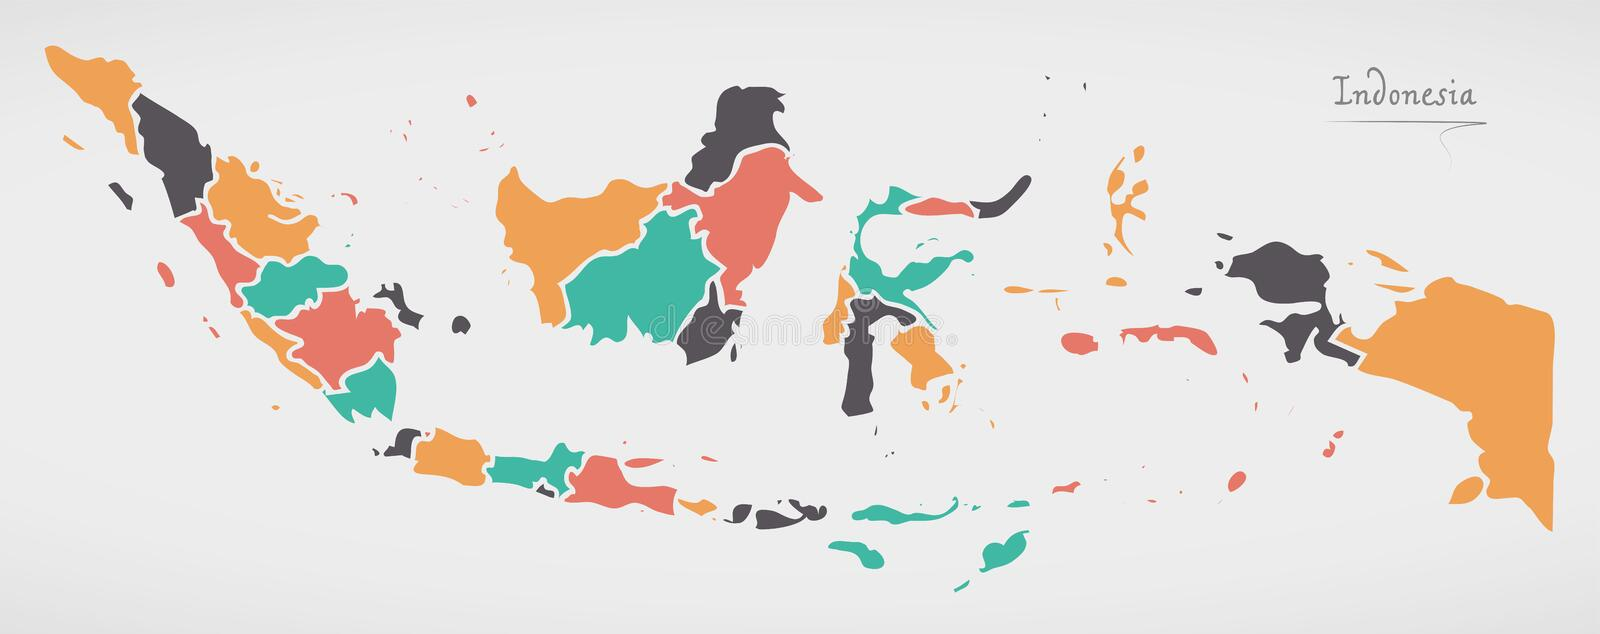 Indonesia Map with states and modern round shapes stock illustration